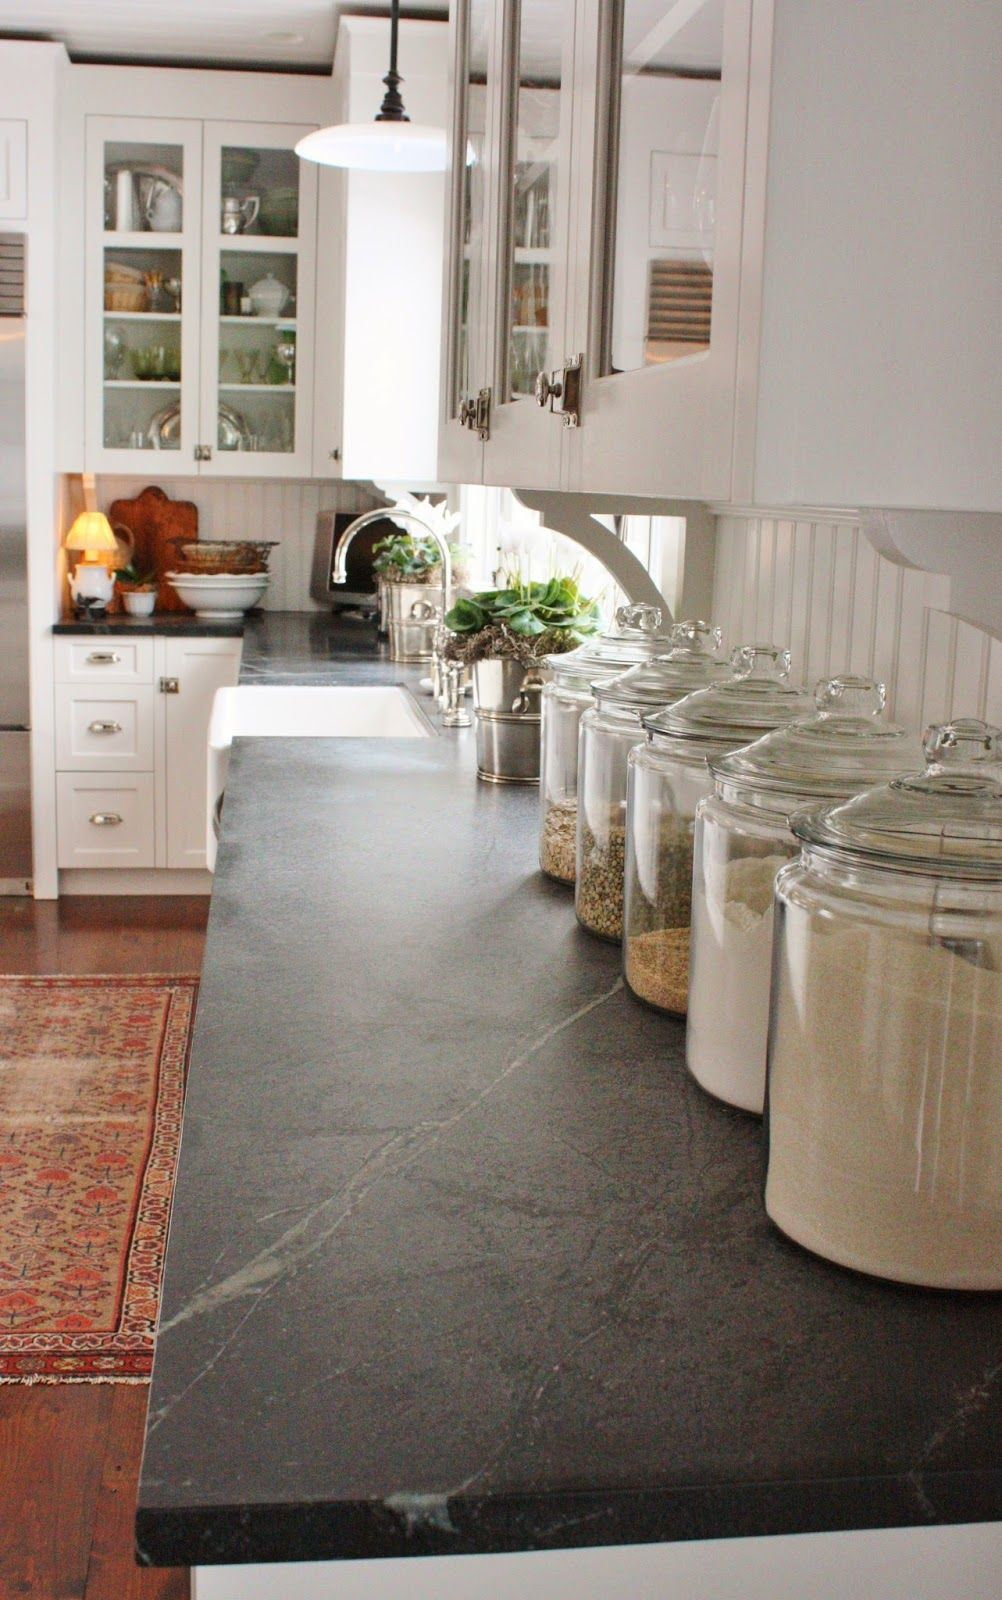 For The Love Of A House: Skip The Granite And Opt For More Of A Natural  Counter Top Alternative Like Soapstone. We Are Big Fans Of Using The Large  Canisters ...